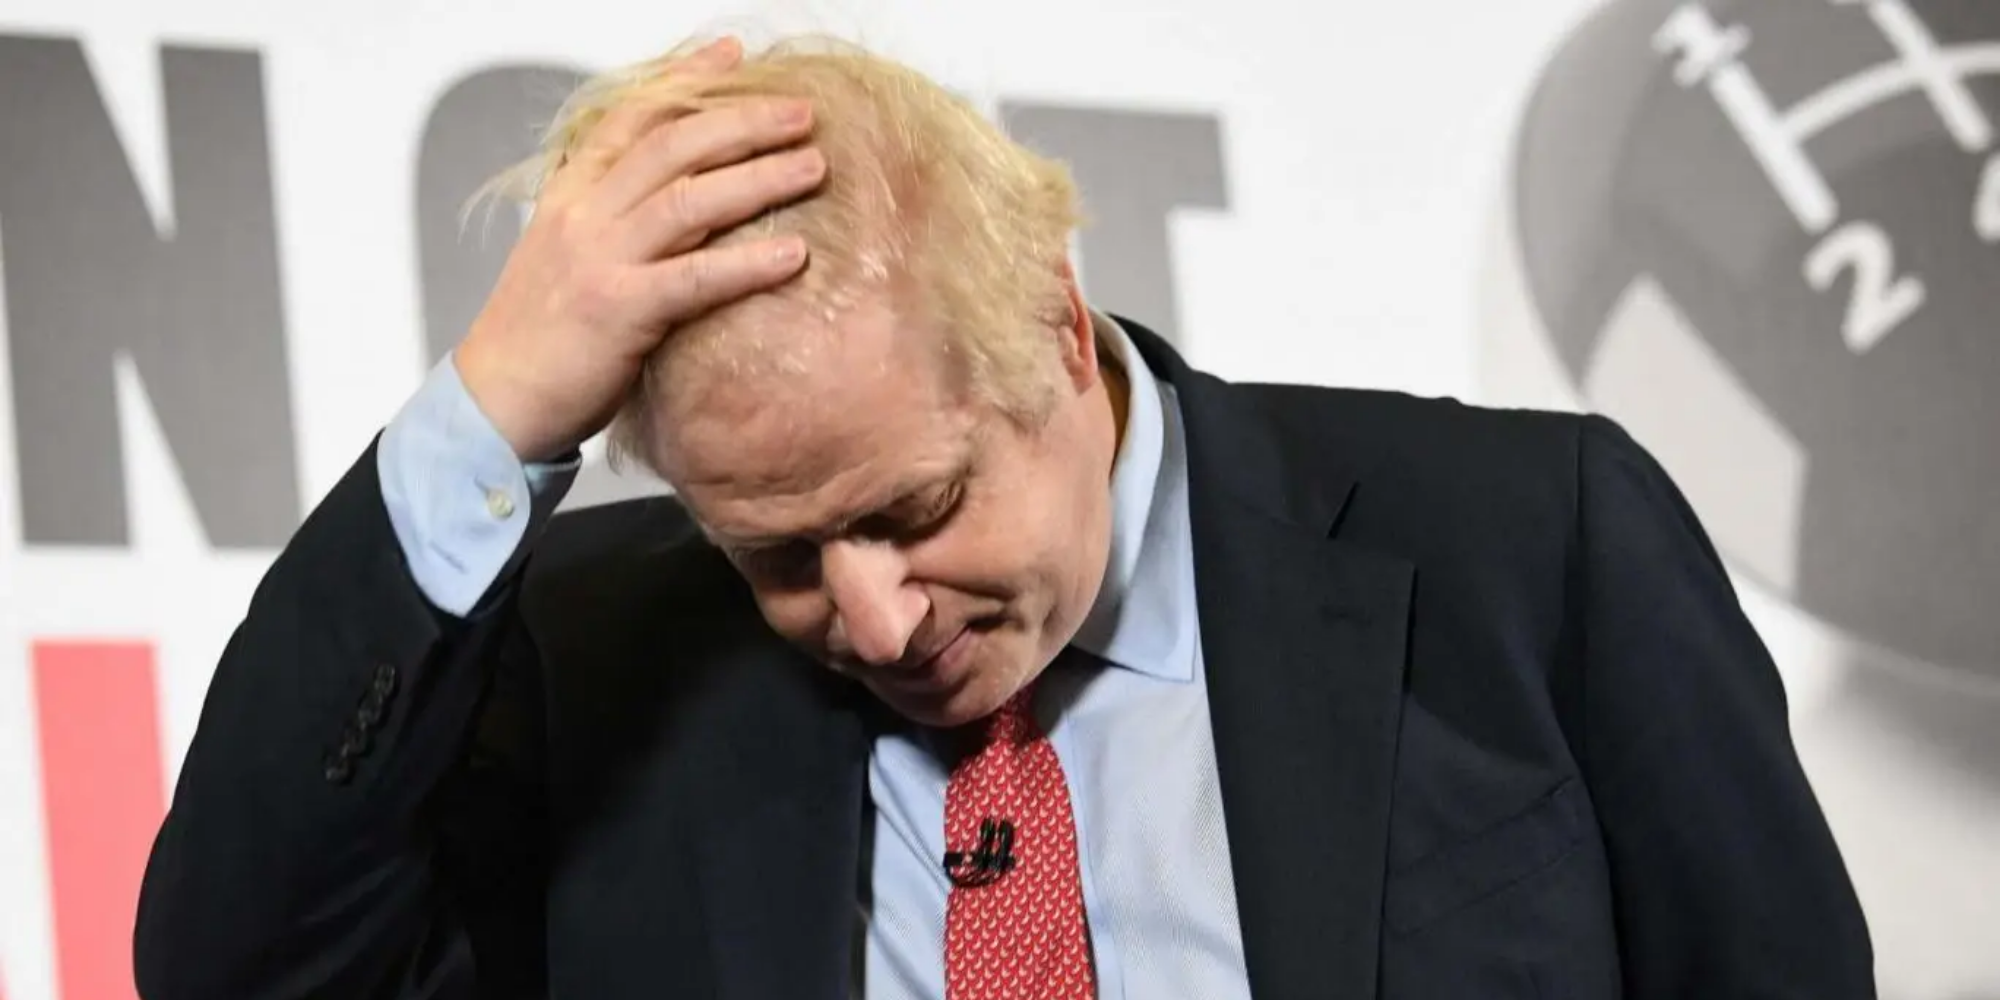 Just when you thought Boris Johnson couldn't get any worse, even more offensive comments have resurfaced